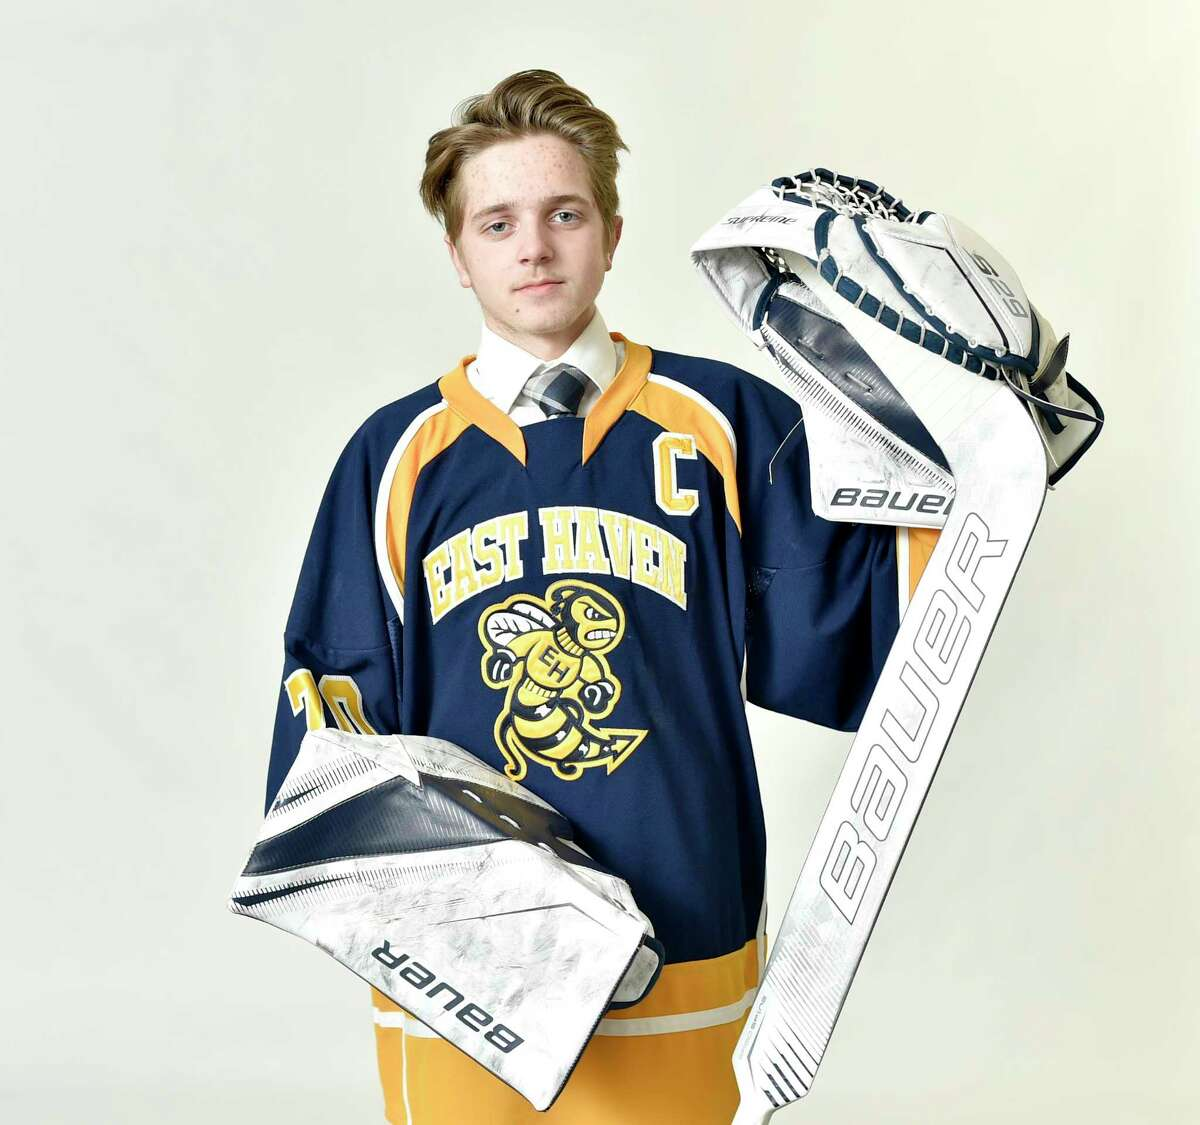 New Haven, Connecticut - Tuesday, March 26, 2019: WINTER ALL AREA PLUS - BOYS HOCKEY: Logan Hamilton, East Haven HS